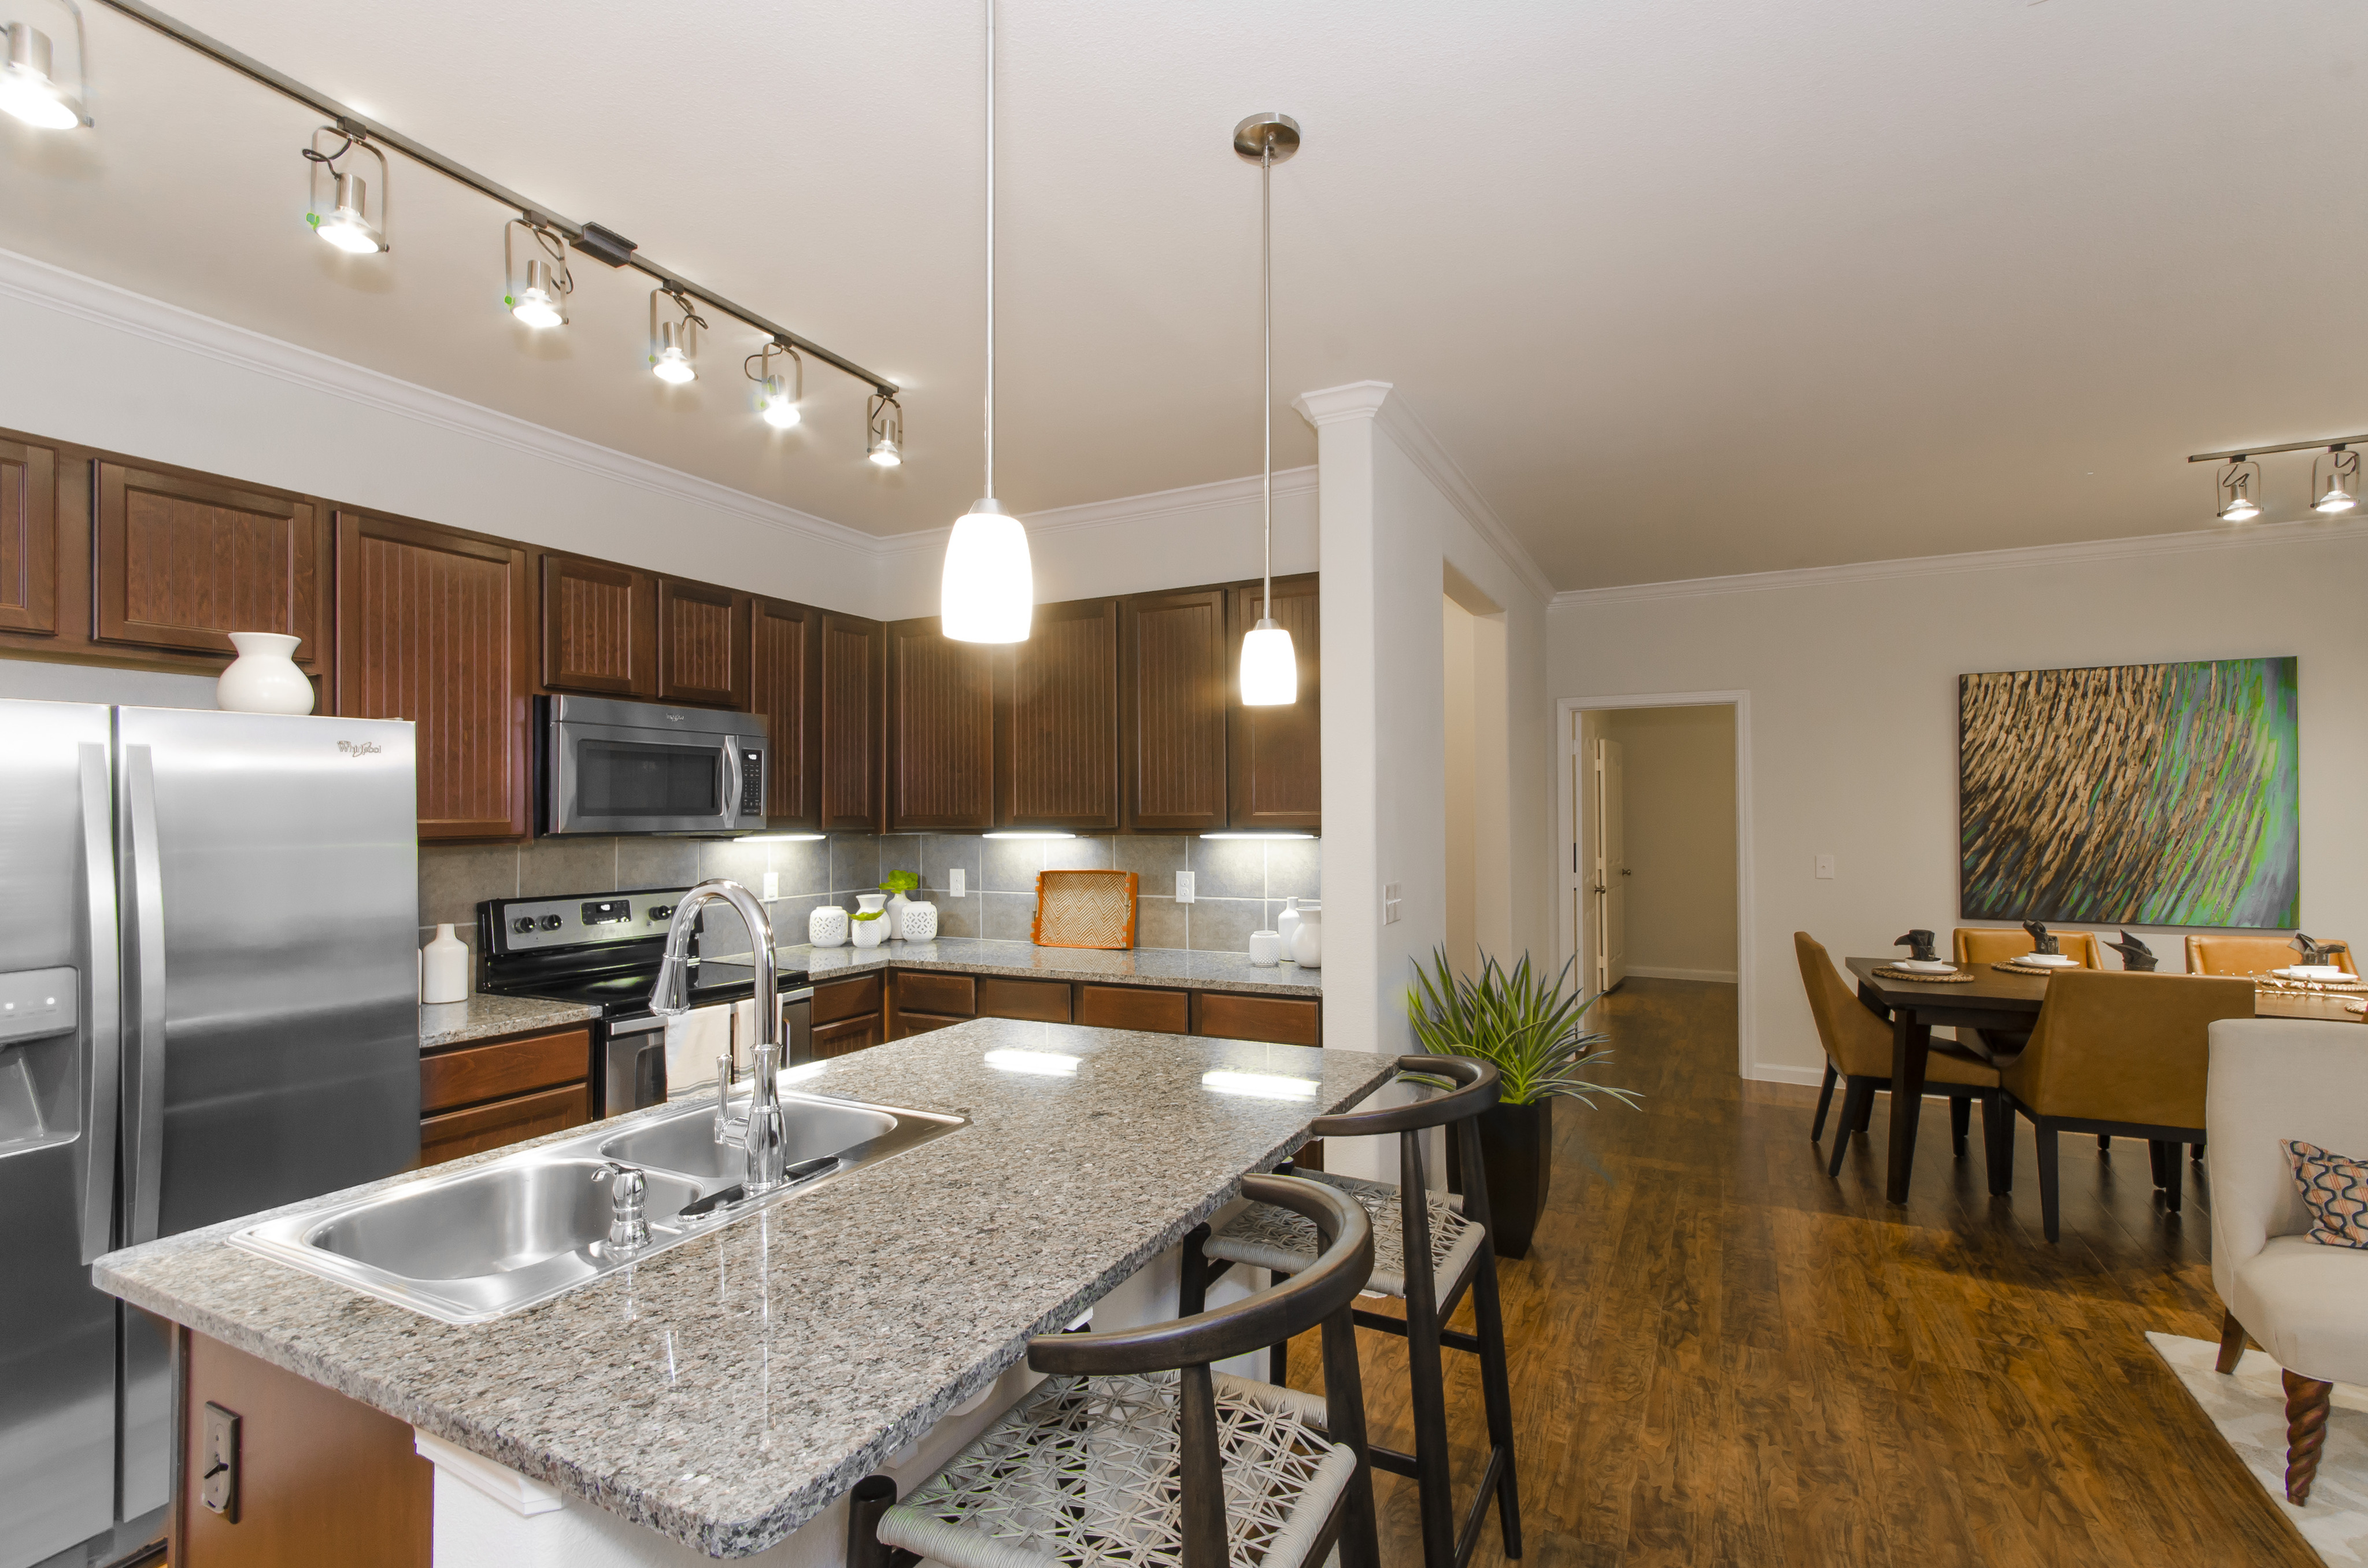 Image of Oversized Chef's Table Kitchen Countertops for The Grand Estates Woodland